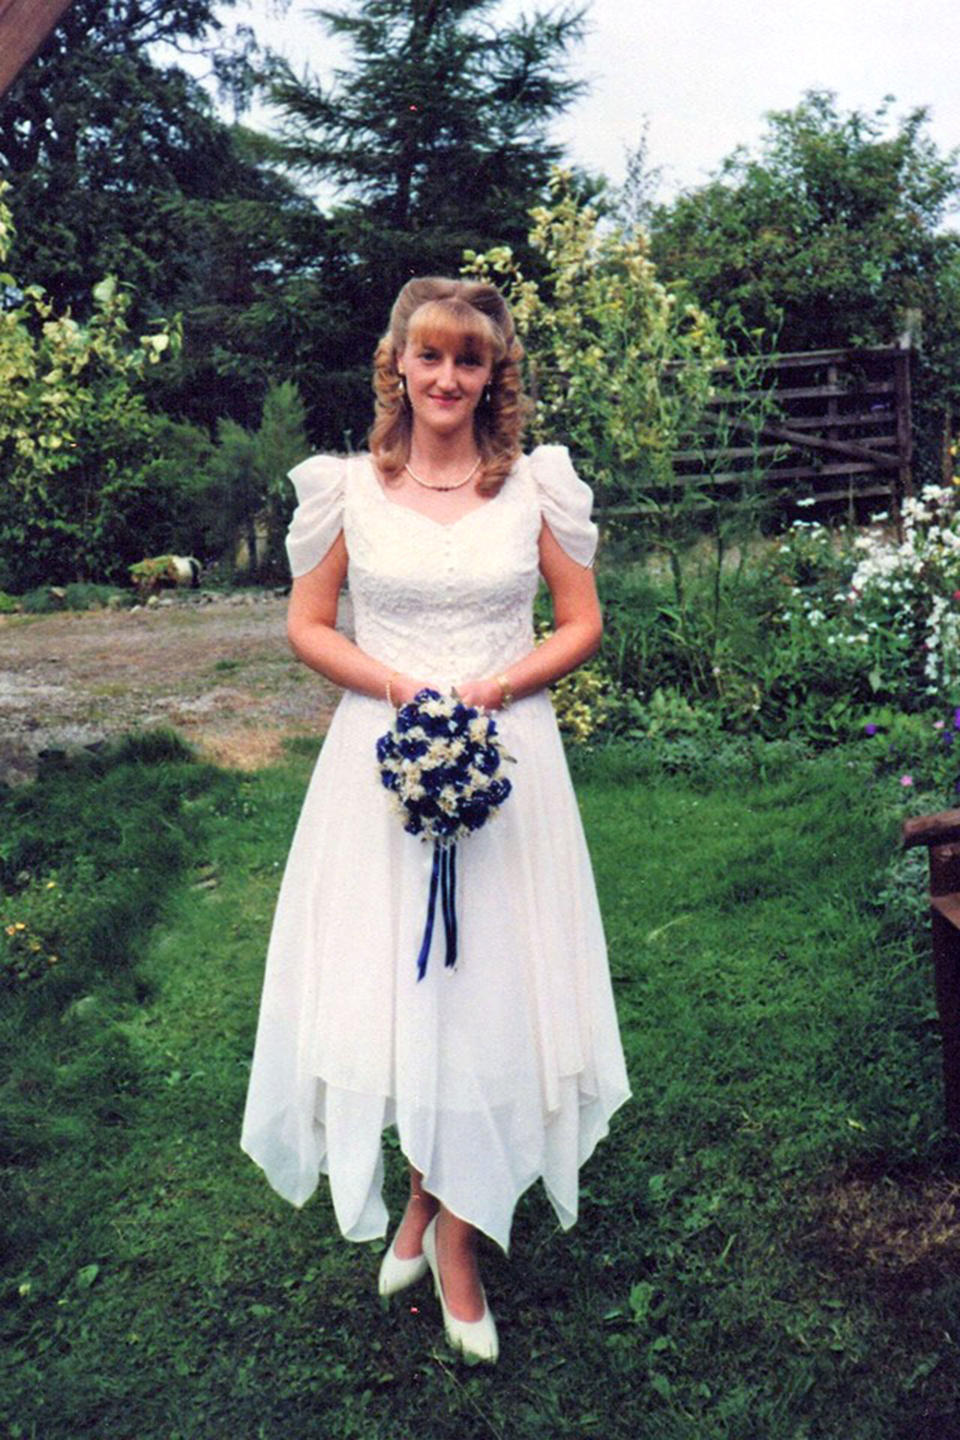 Her mother photographed in the sentimental gown her wedding day [Photo: Caters]